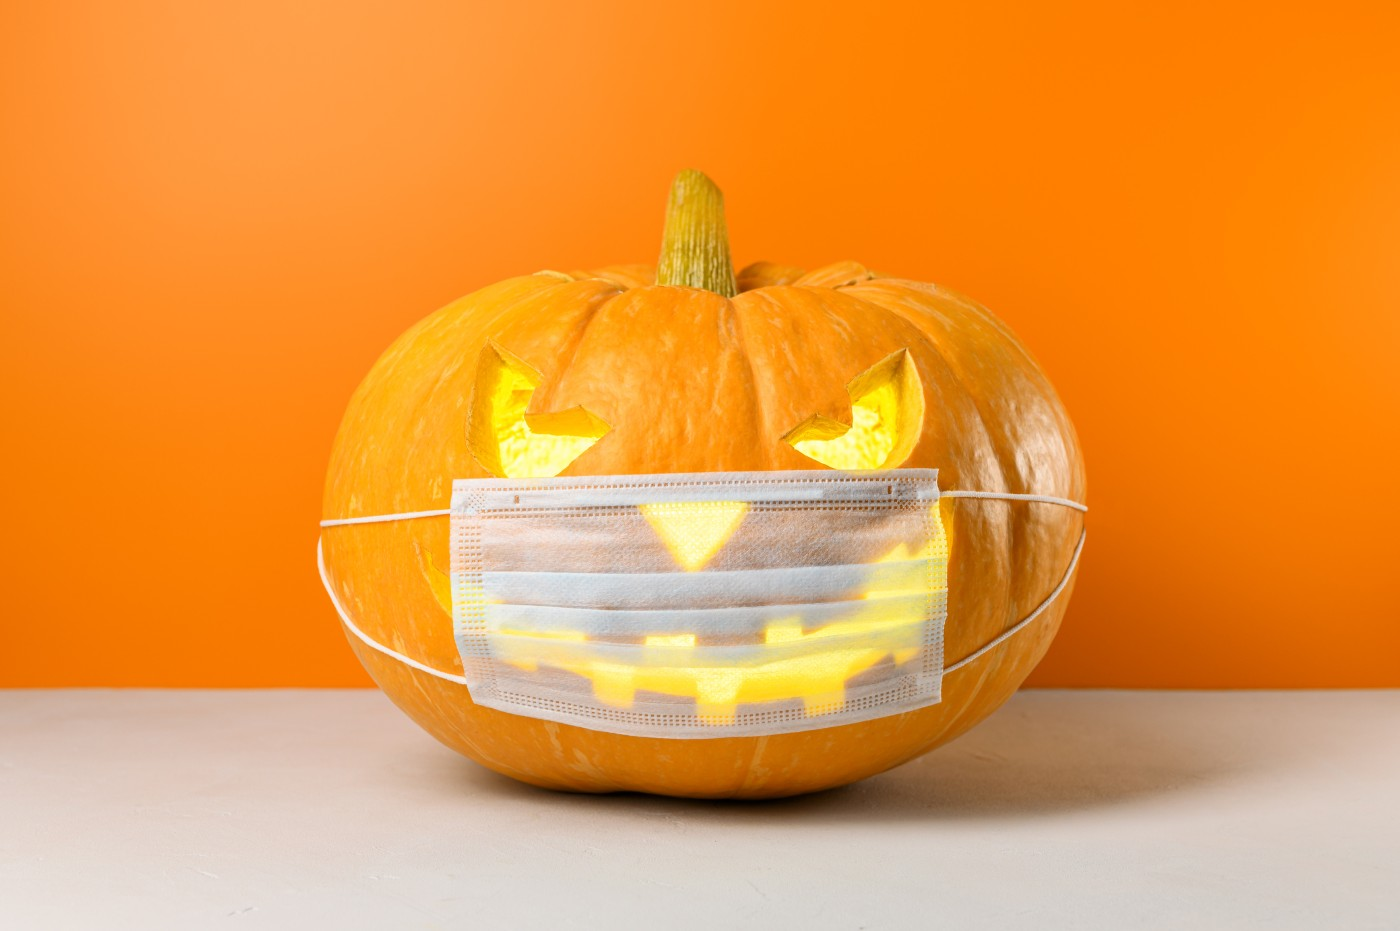 https://tickertapecdn.tdameritrade.com/assets/images/pages/md/Mask o lantern 2020: FAANG earnings